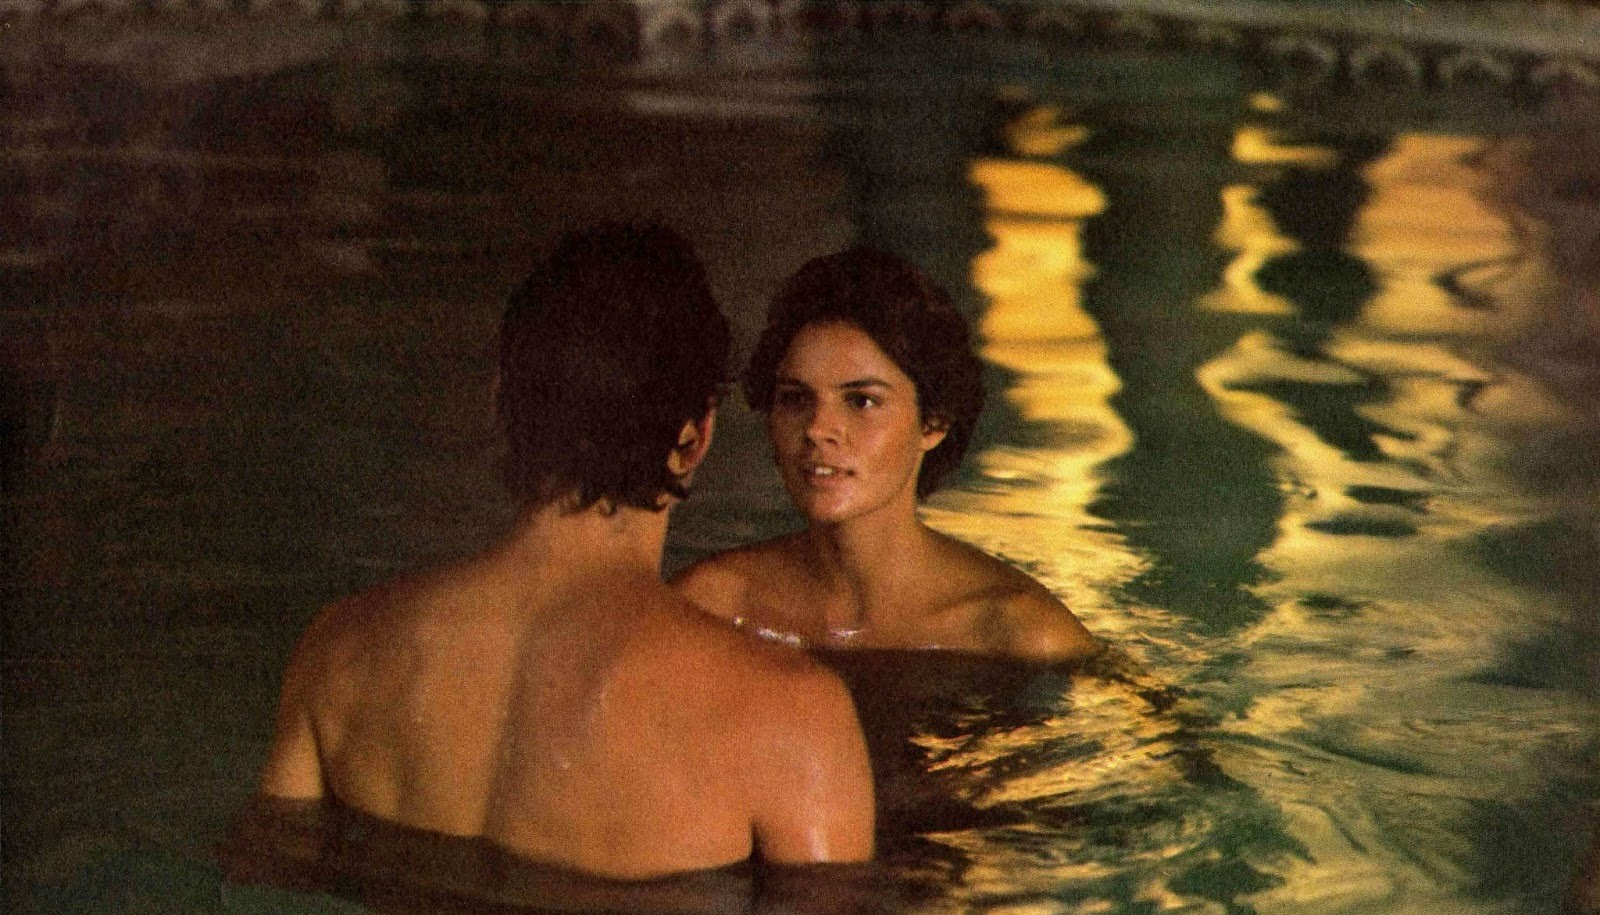 Tahnee Welch about to reveal her true alien self to Steve Guttenberg in the pool in Cocoon (1985)